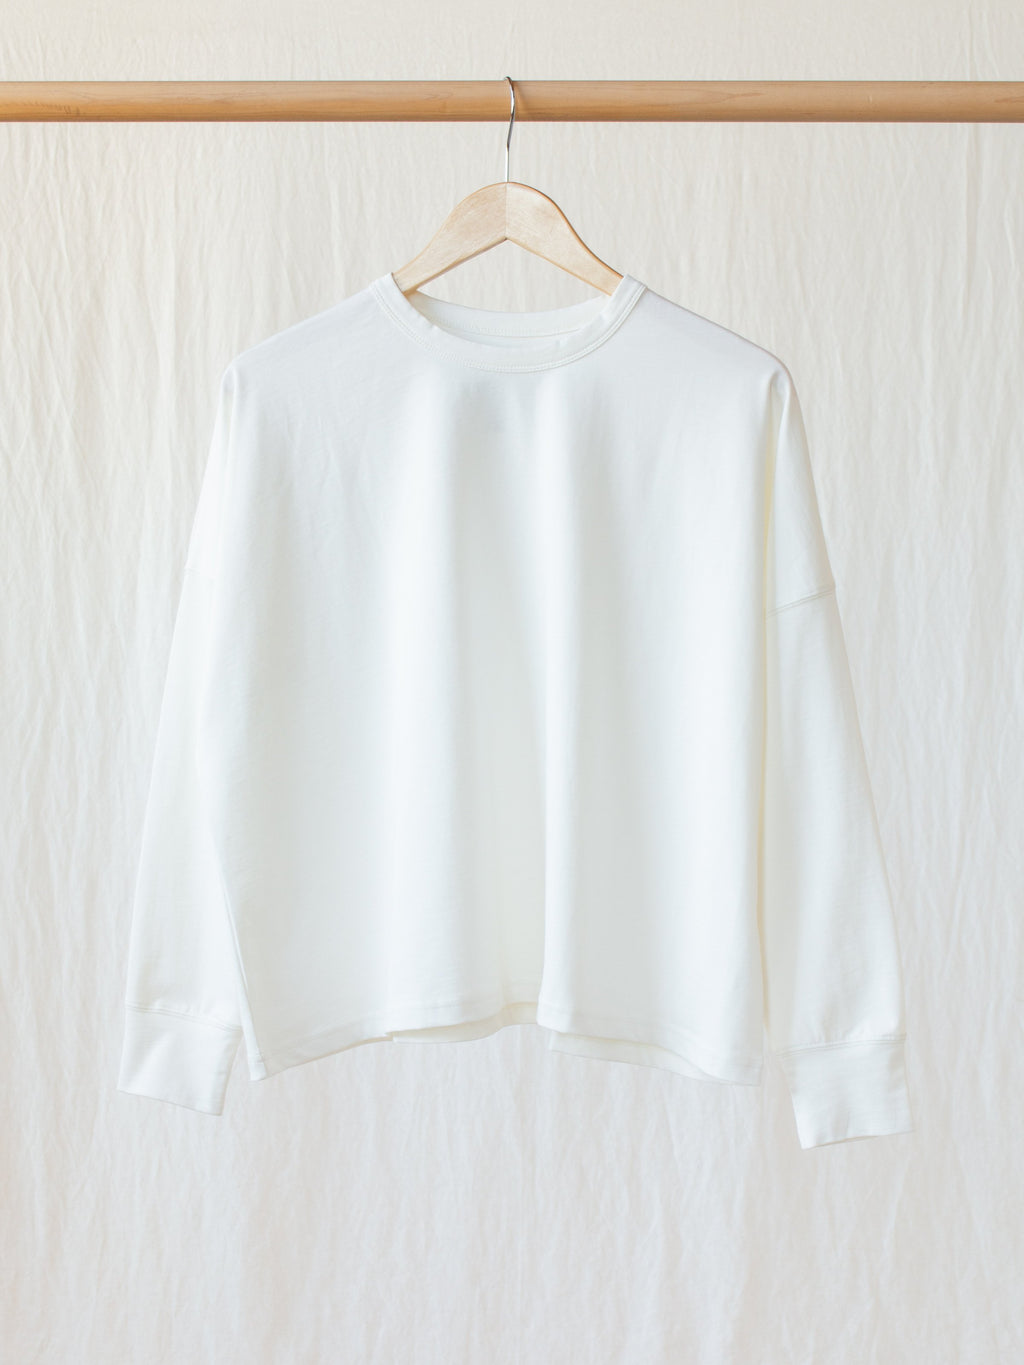 Namu Shop - Studio Nicholson Loop Mercerized Cotton Tee - Optic White